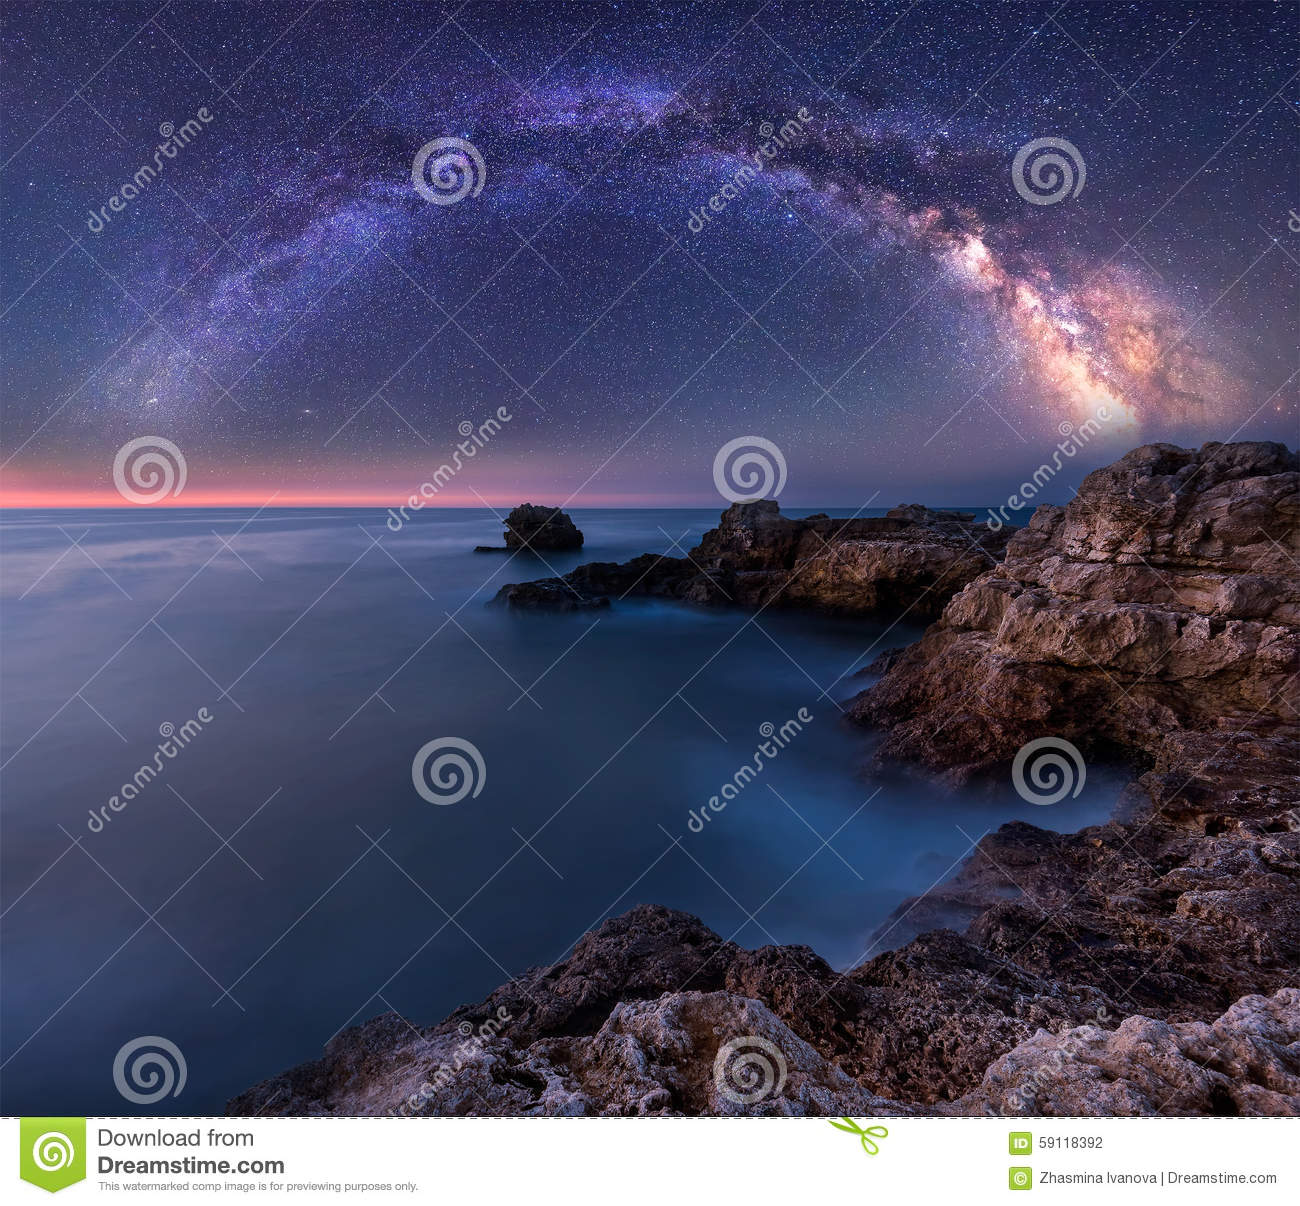 Download Milky Way over the sea stock photo. Image of beauty, nature - 59118392